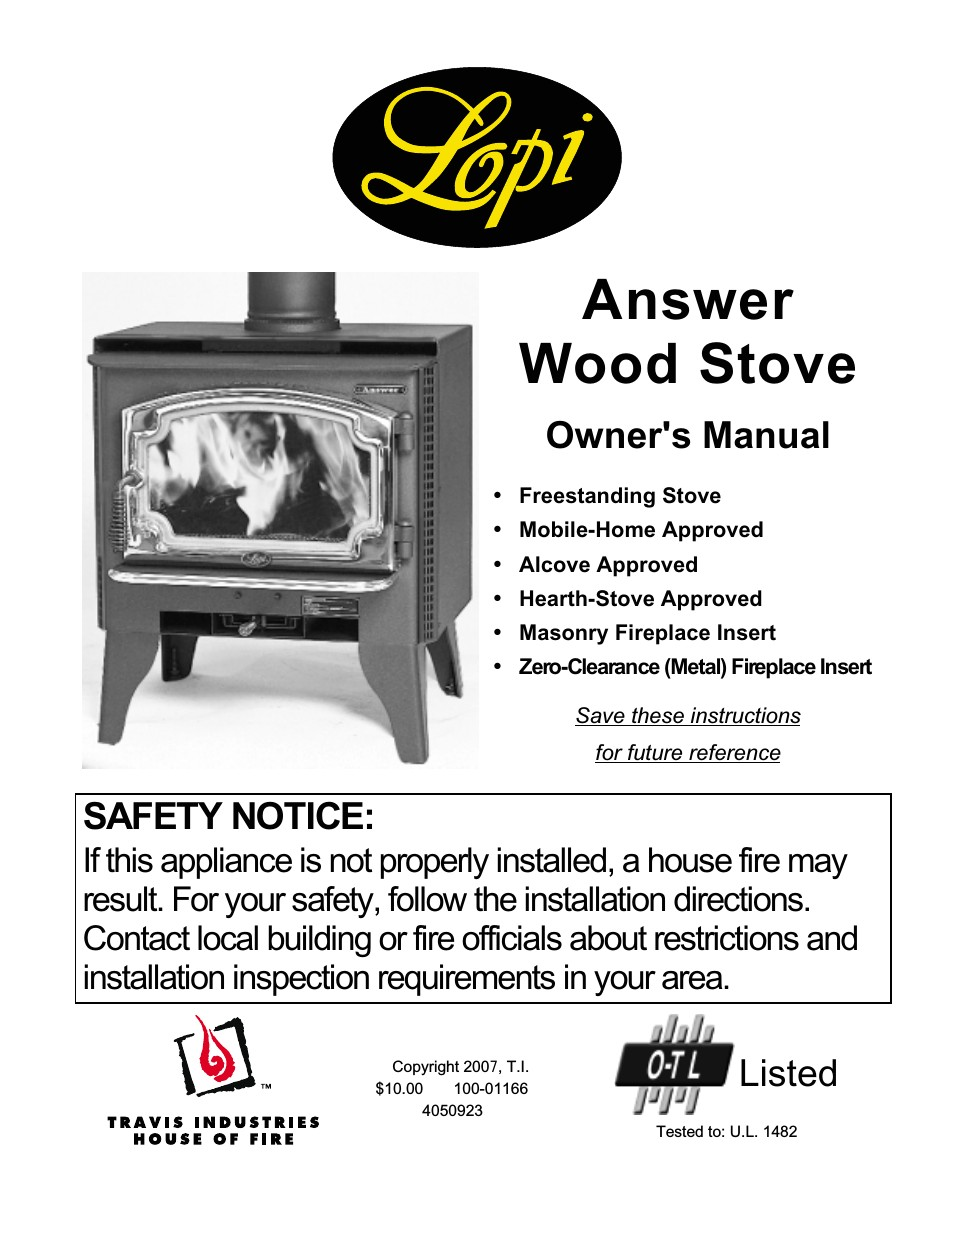 lopi answer wood stove page1 png